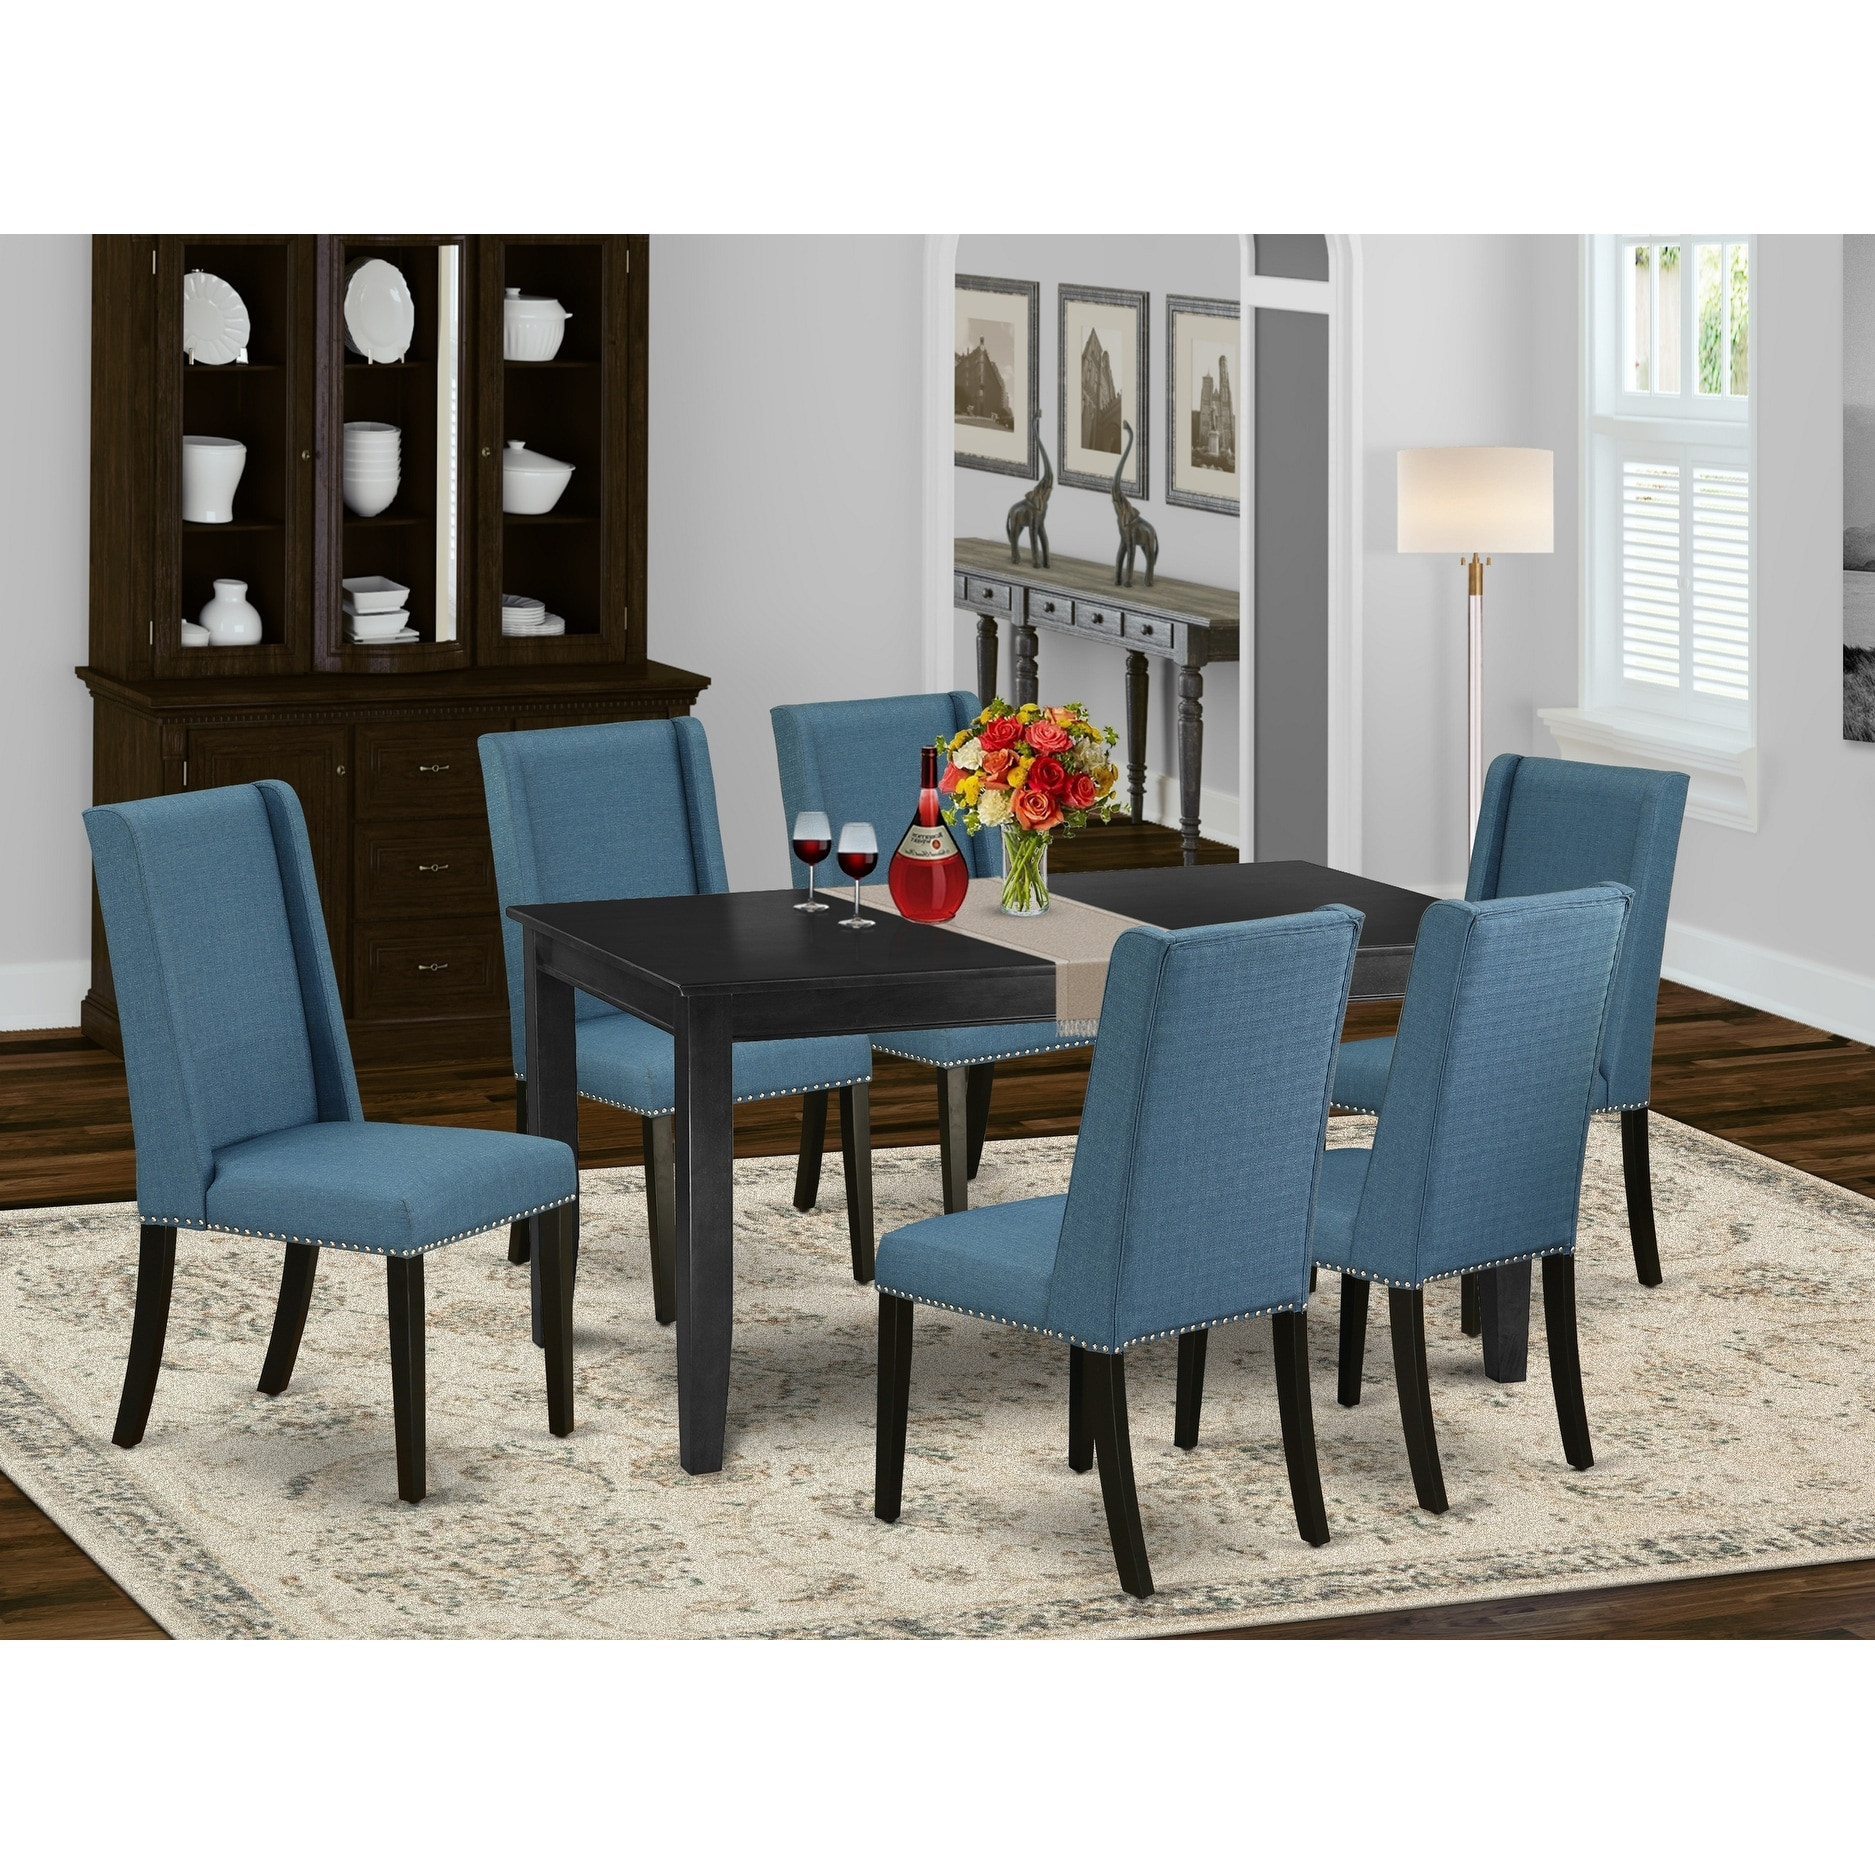 Dufl7 Blk 21 7 Piece Kitchen Dining Table Set 6 Parson Dining Chairs And Small Dining Table High Back Black Finish Overstock 32085564